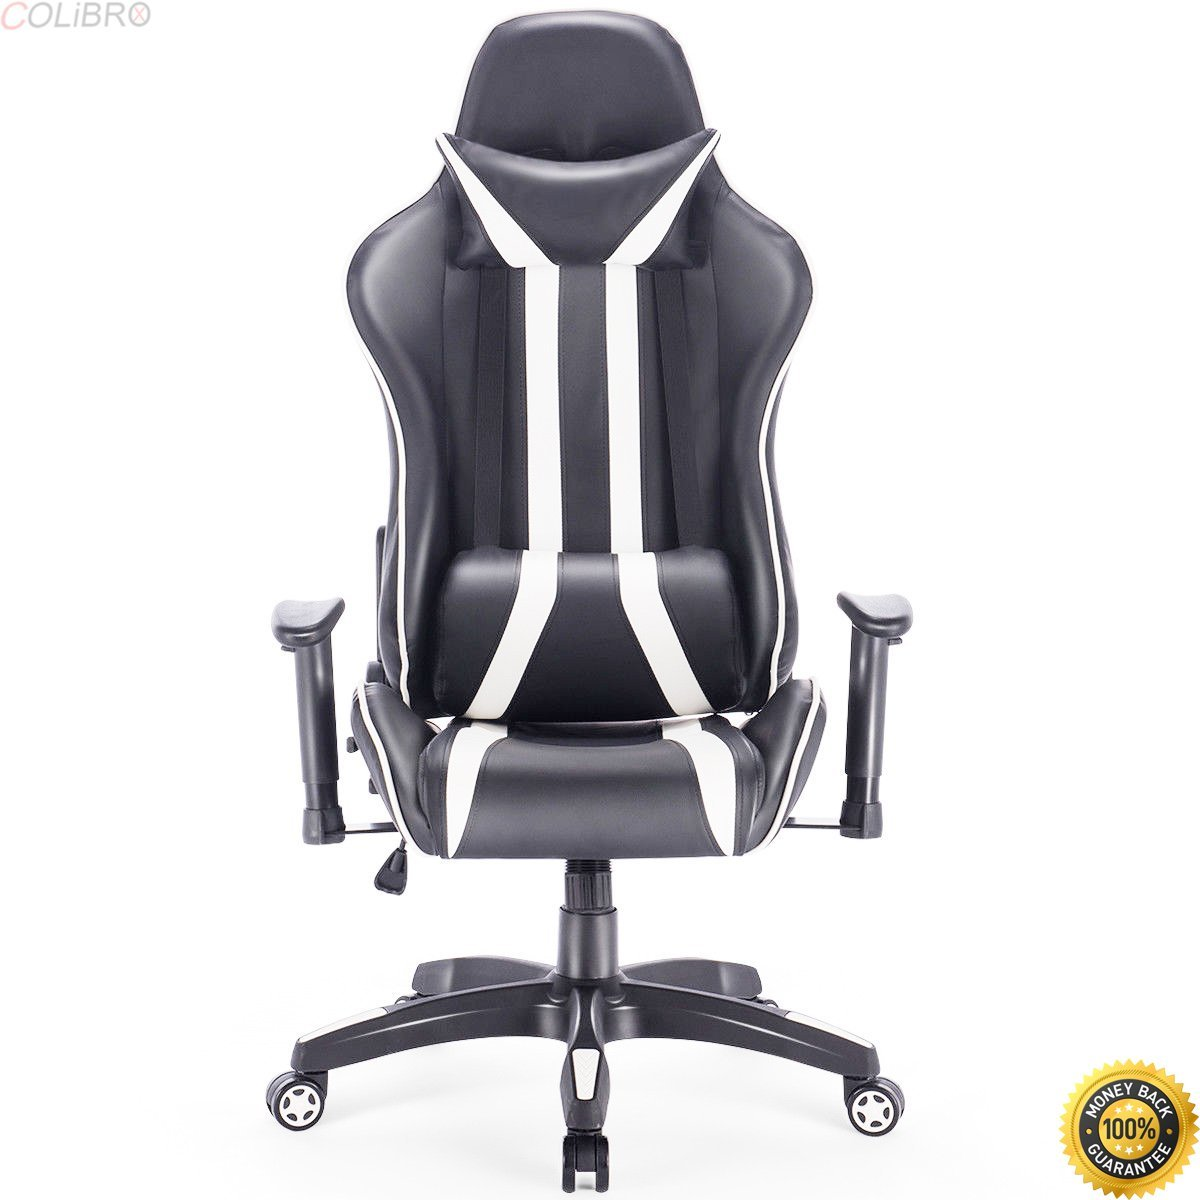 Buy Dxracer Office Chairs Mx0 Nc Gaming Chair Racing Seats